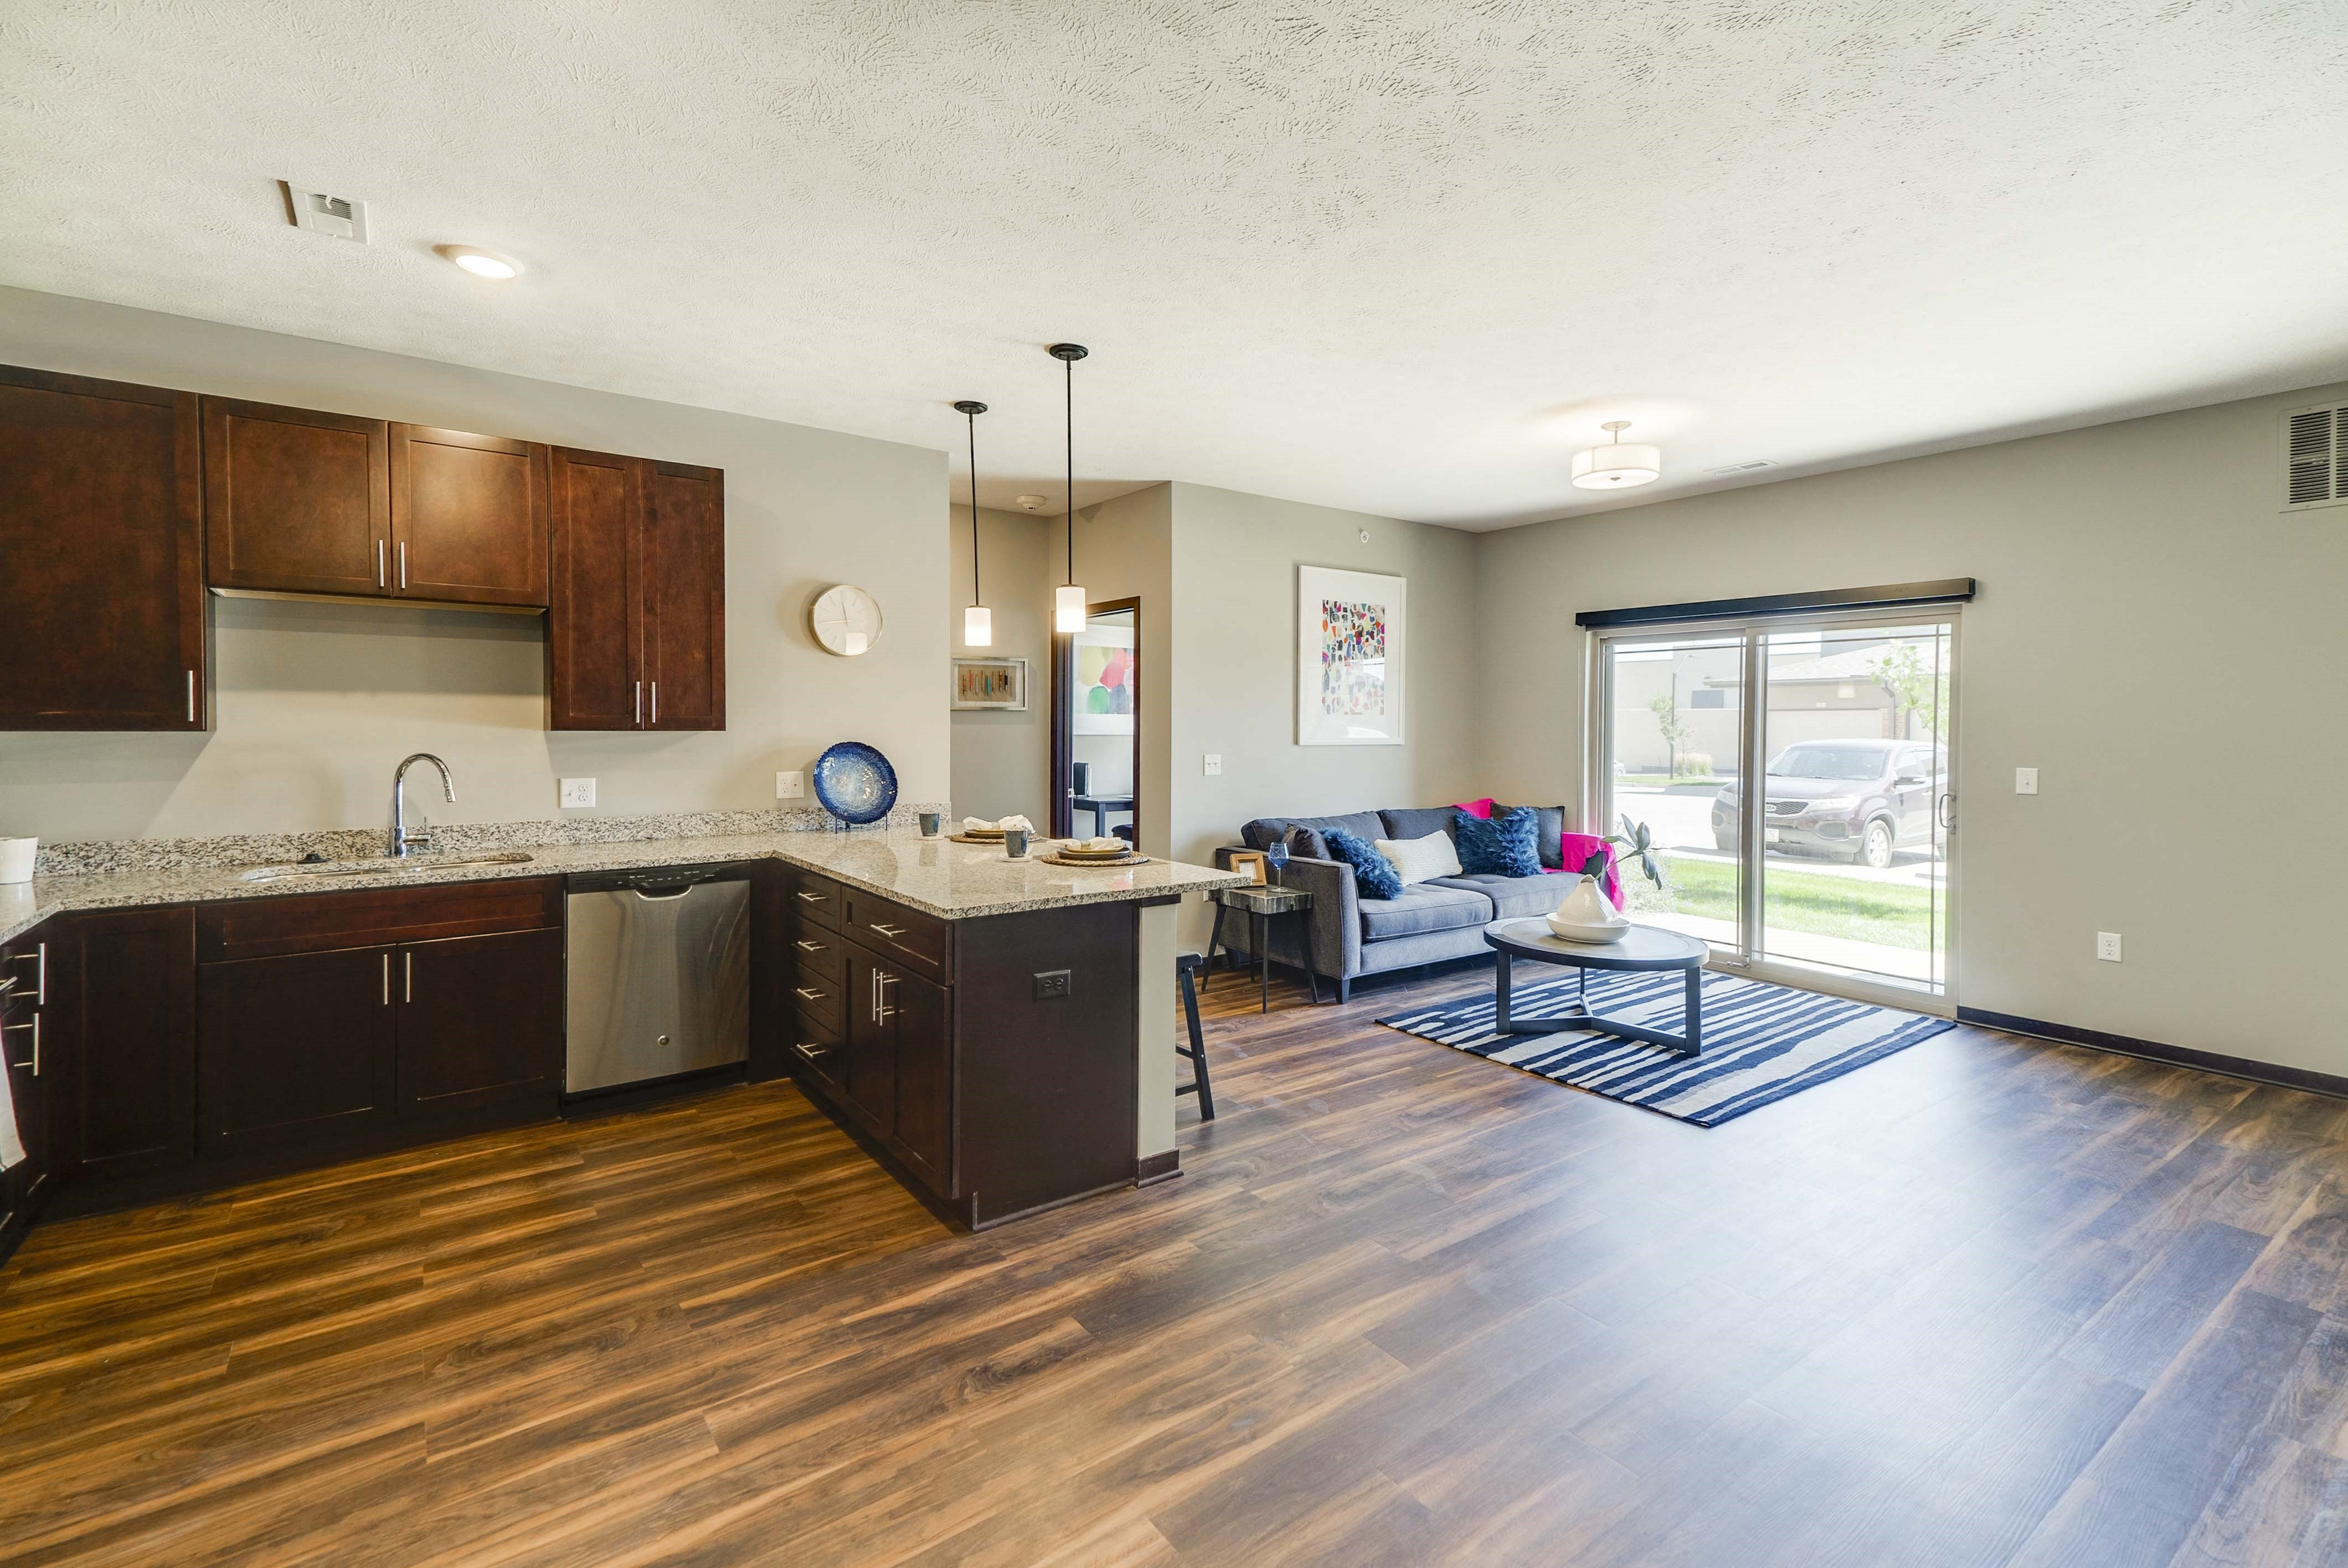 Spacious living room and kitchen of 2 bedroom apartment for rent at 360 at Jordan West best new apartments West Des Moines IA 50266